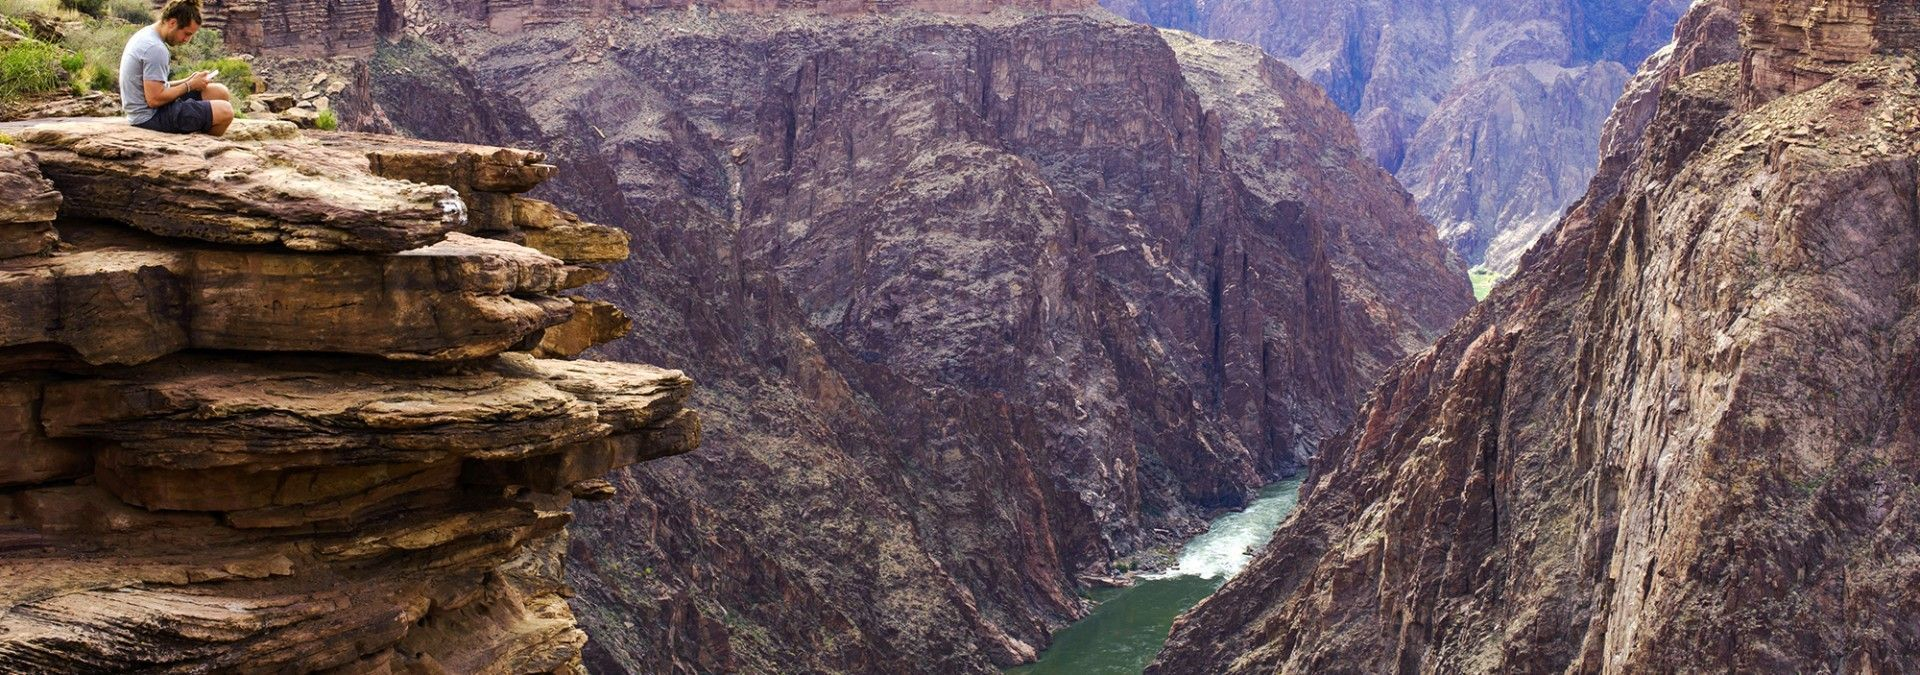 Looking_down_into_Canyon_river_USA.jpg